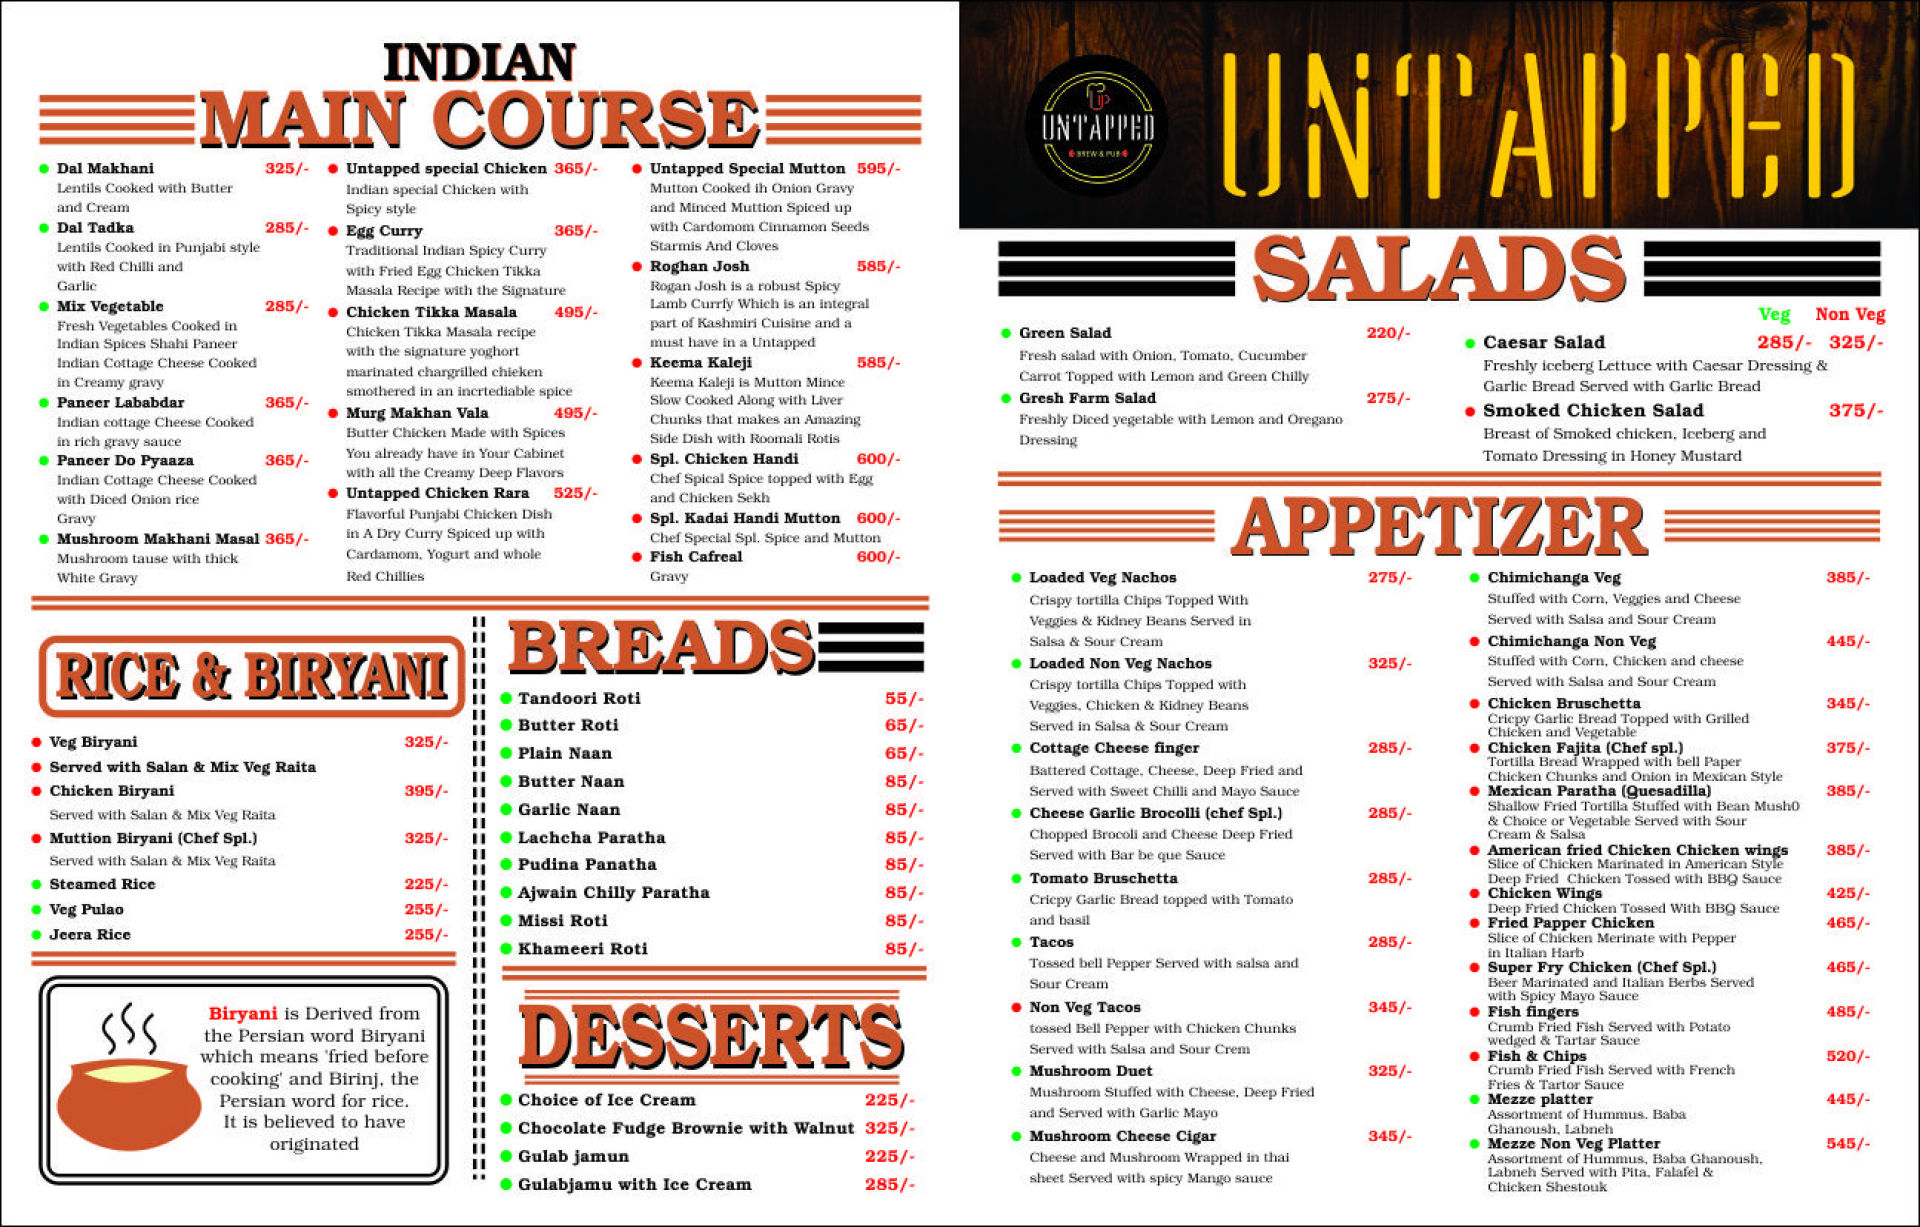 Untapped, Sector 21, Gurgaon